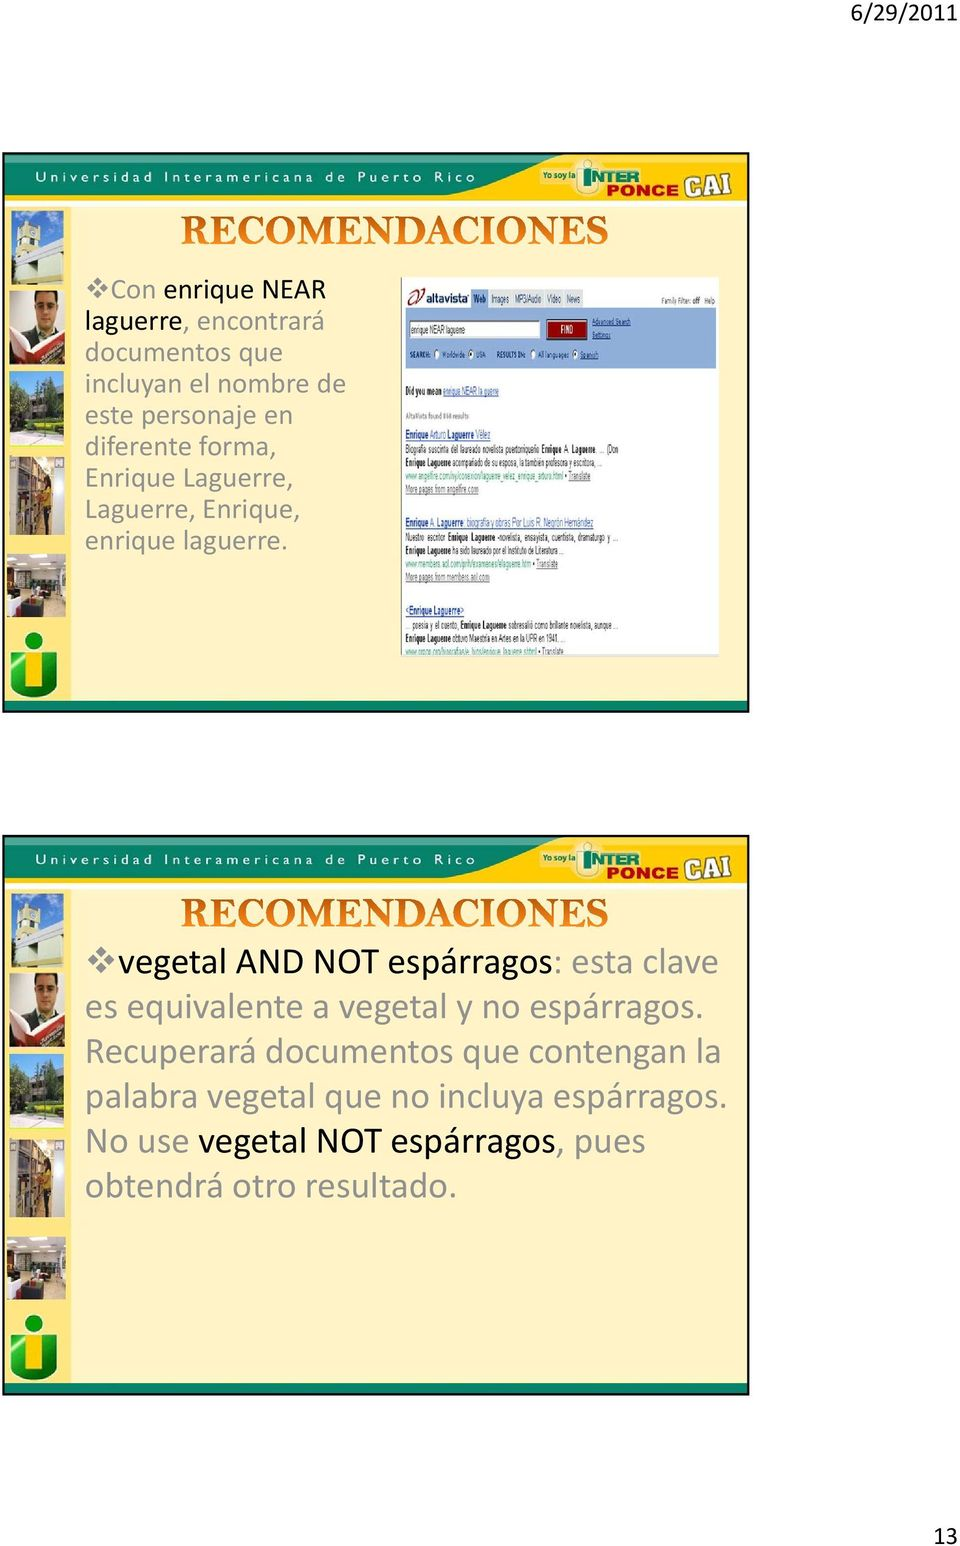 vegetal AND NOT espárragos: esta clave es equivalente a vegetal y no espárragos.